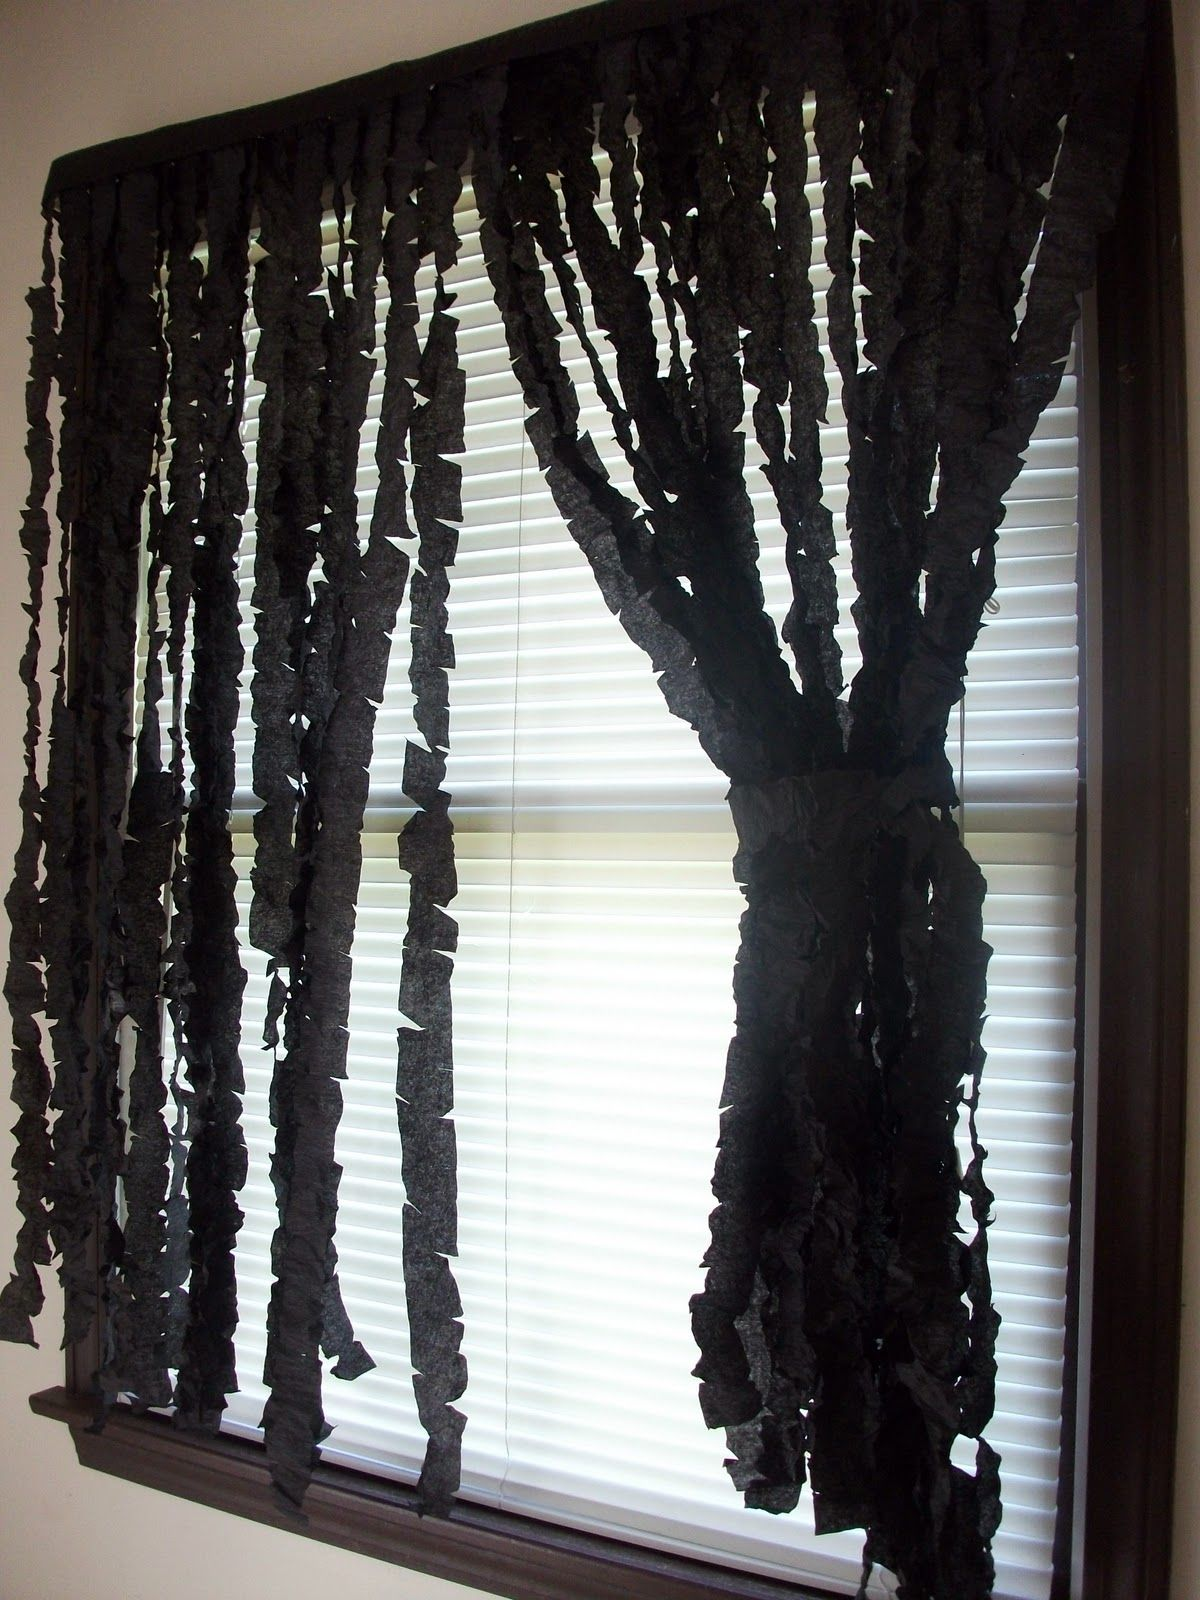 Window decor for halloween  diy spooky curtain diy halloween decorations decorate decor